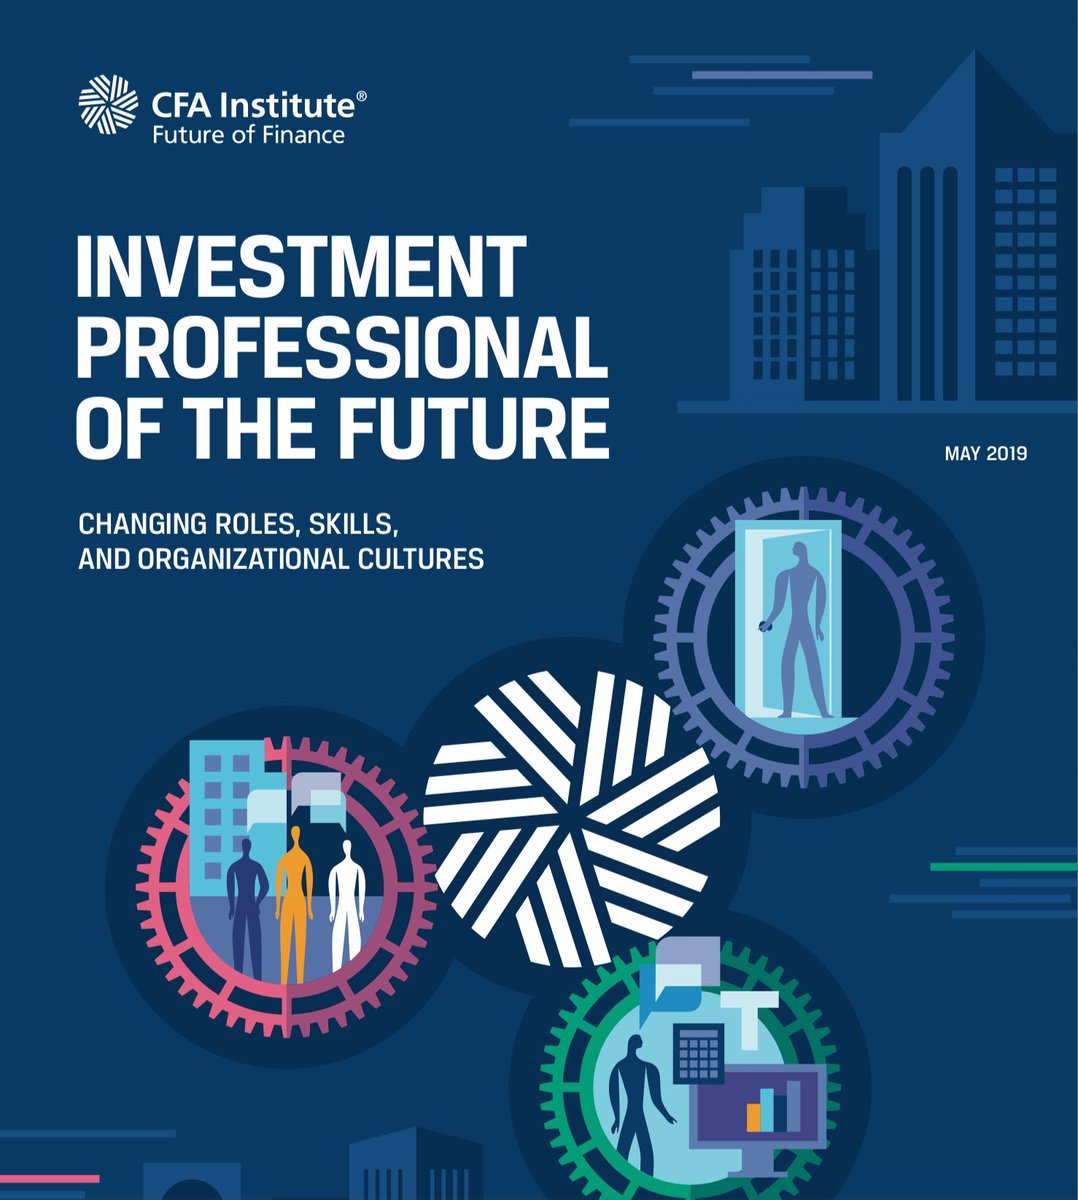 """Investment Professional of the Future"" report by @CFAinstitute.  …https://24t2aa29h0u13kg0ae2odrby-wpengine.netdna-ssl.com/wp-content/uploads/2019/06/Investment-Professional-of-the-Future-FoF.pdf …"